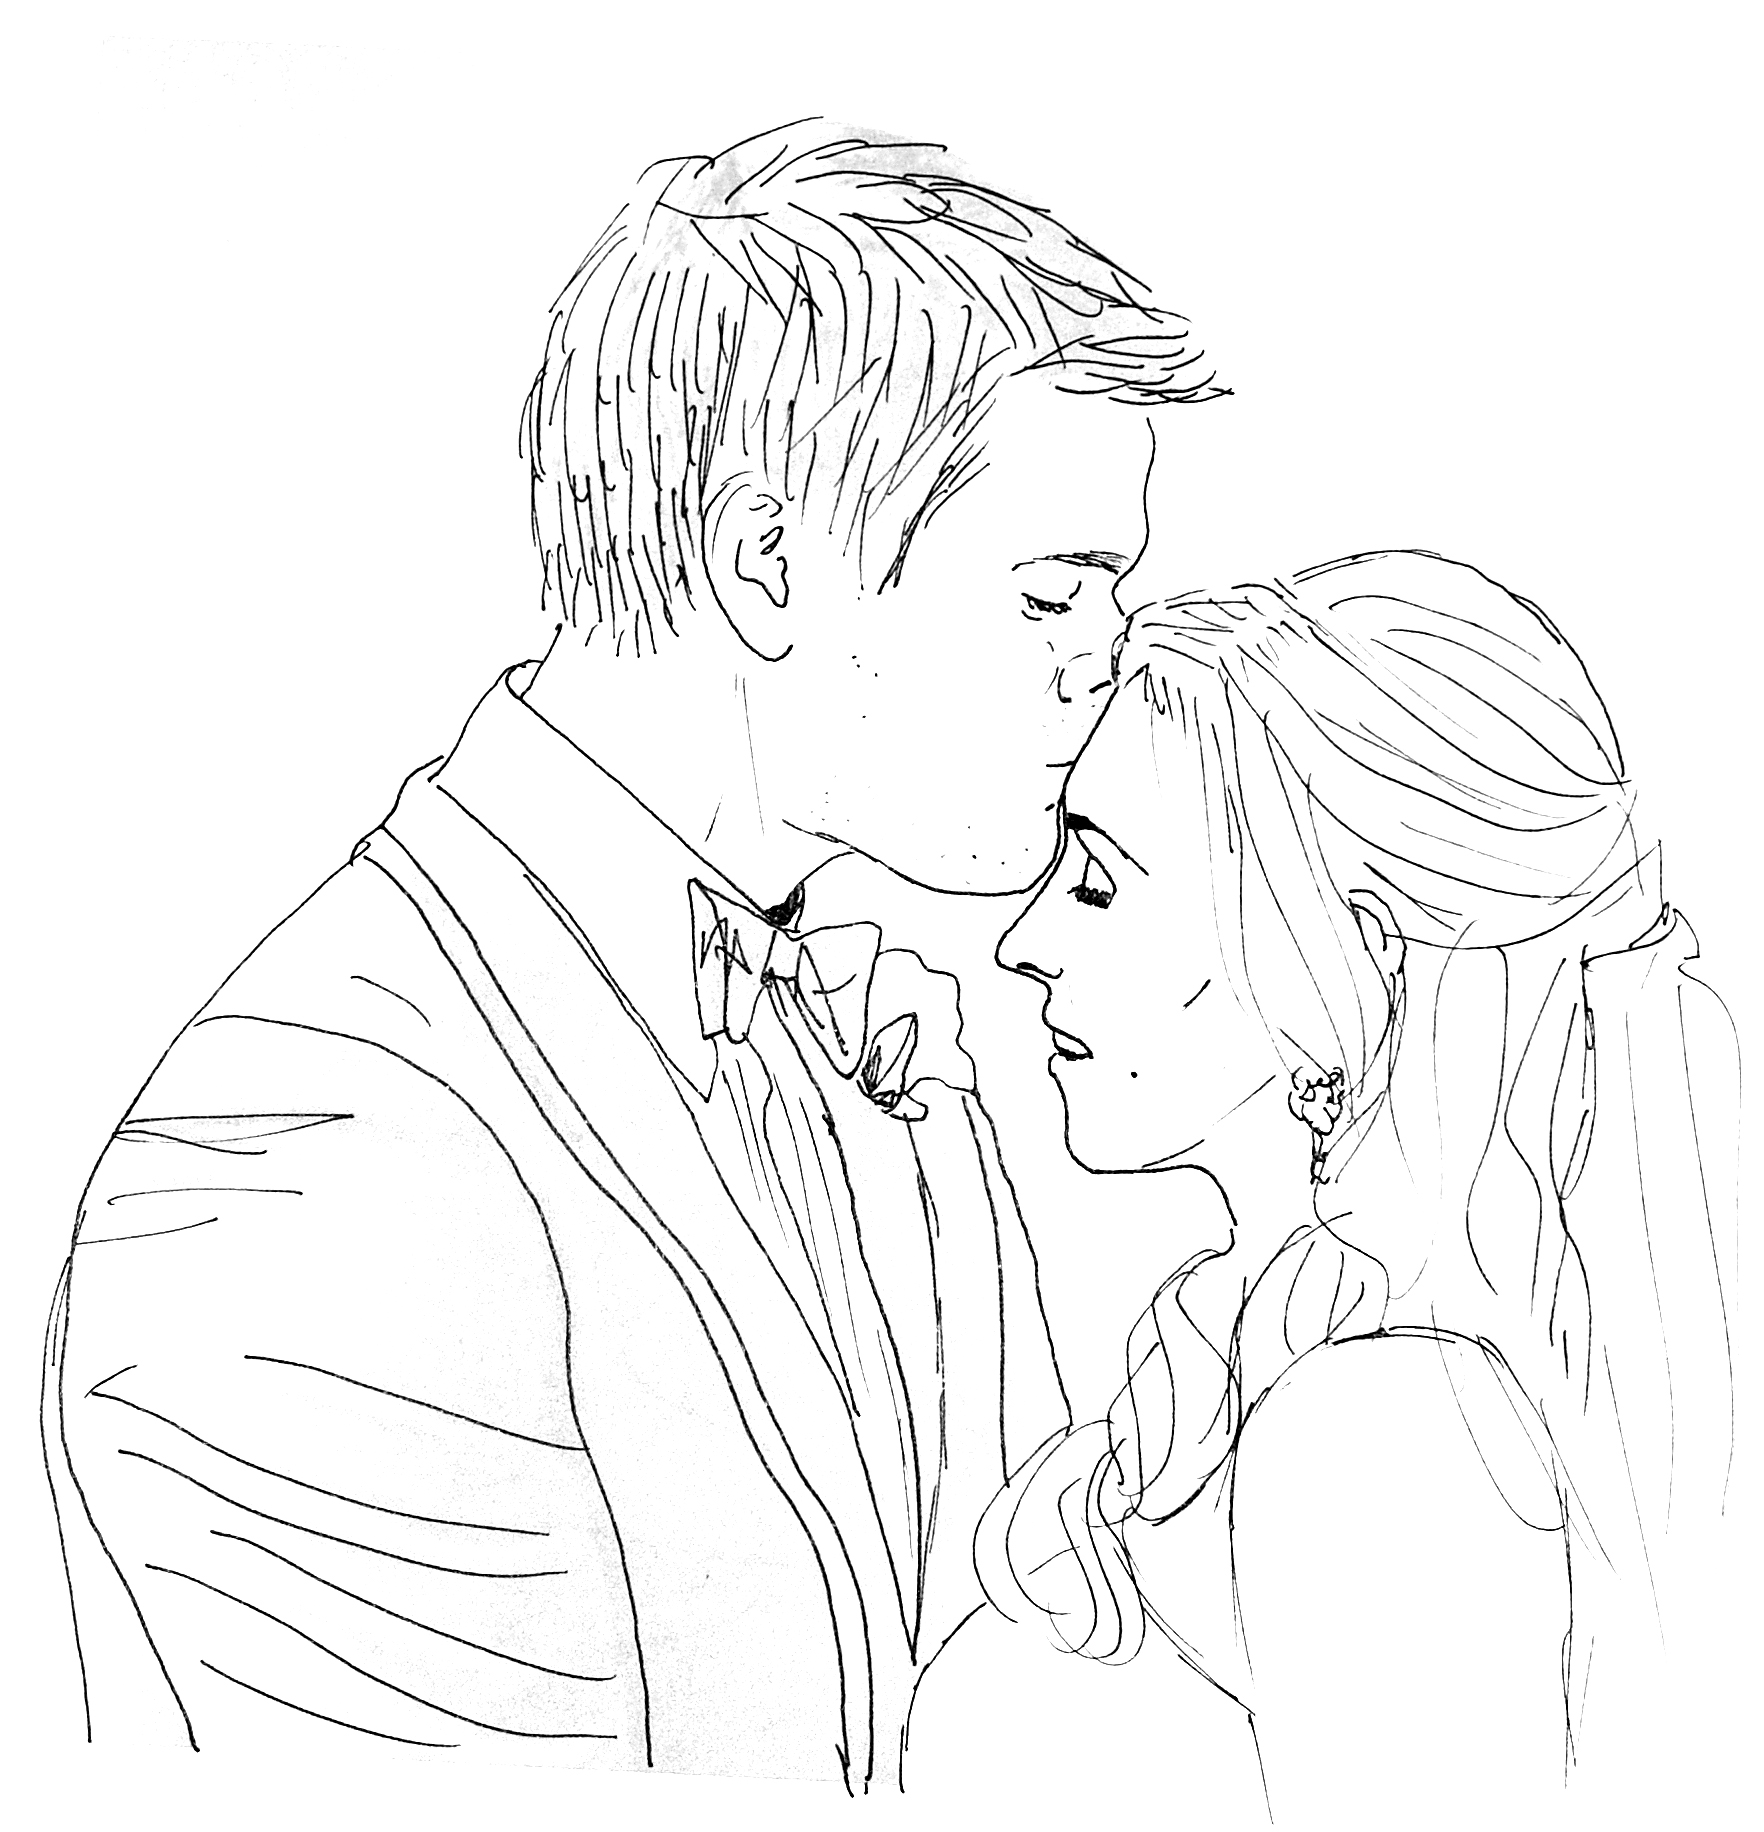 lesbian wedding coloring pages | Wedding Couple Drawing at GetDrawings.com | Free for ...